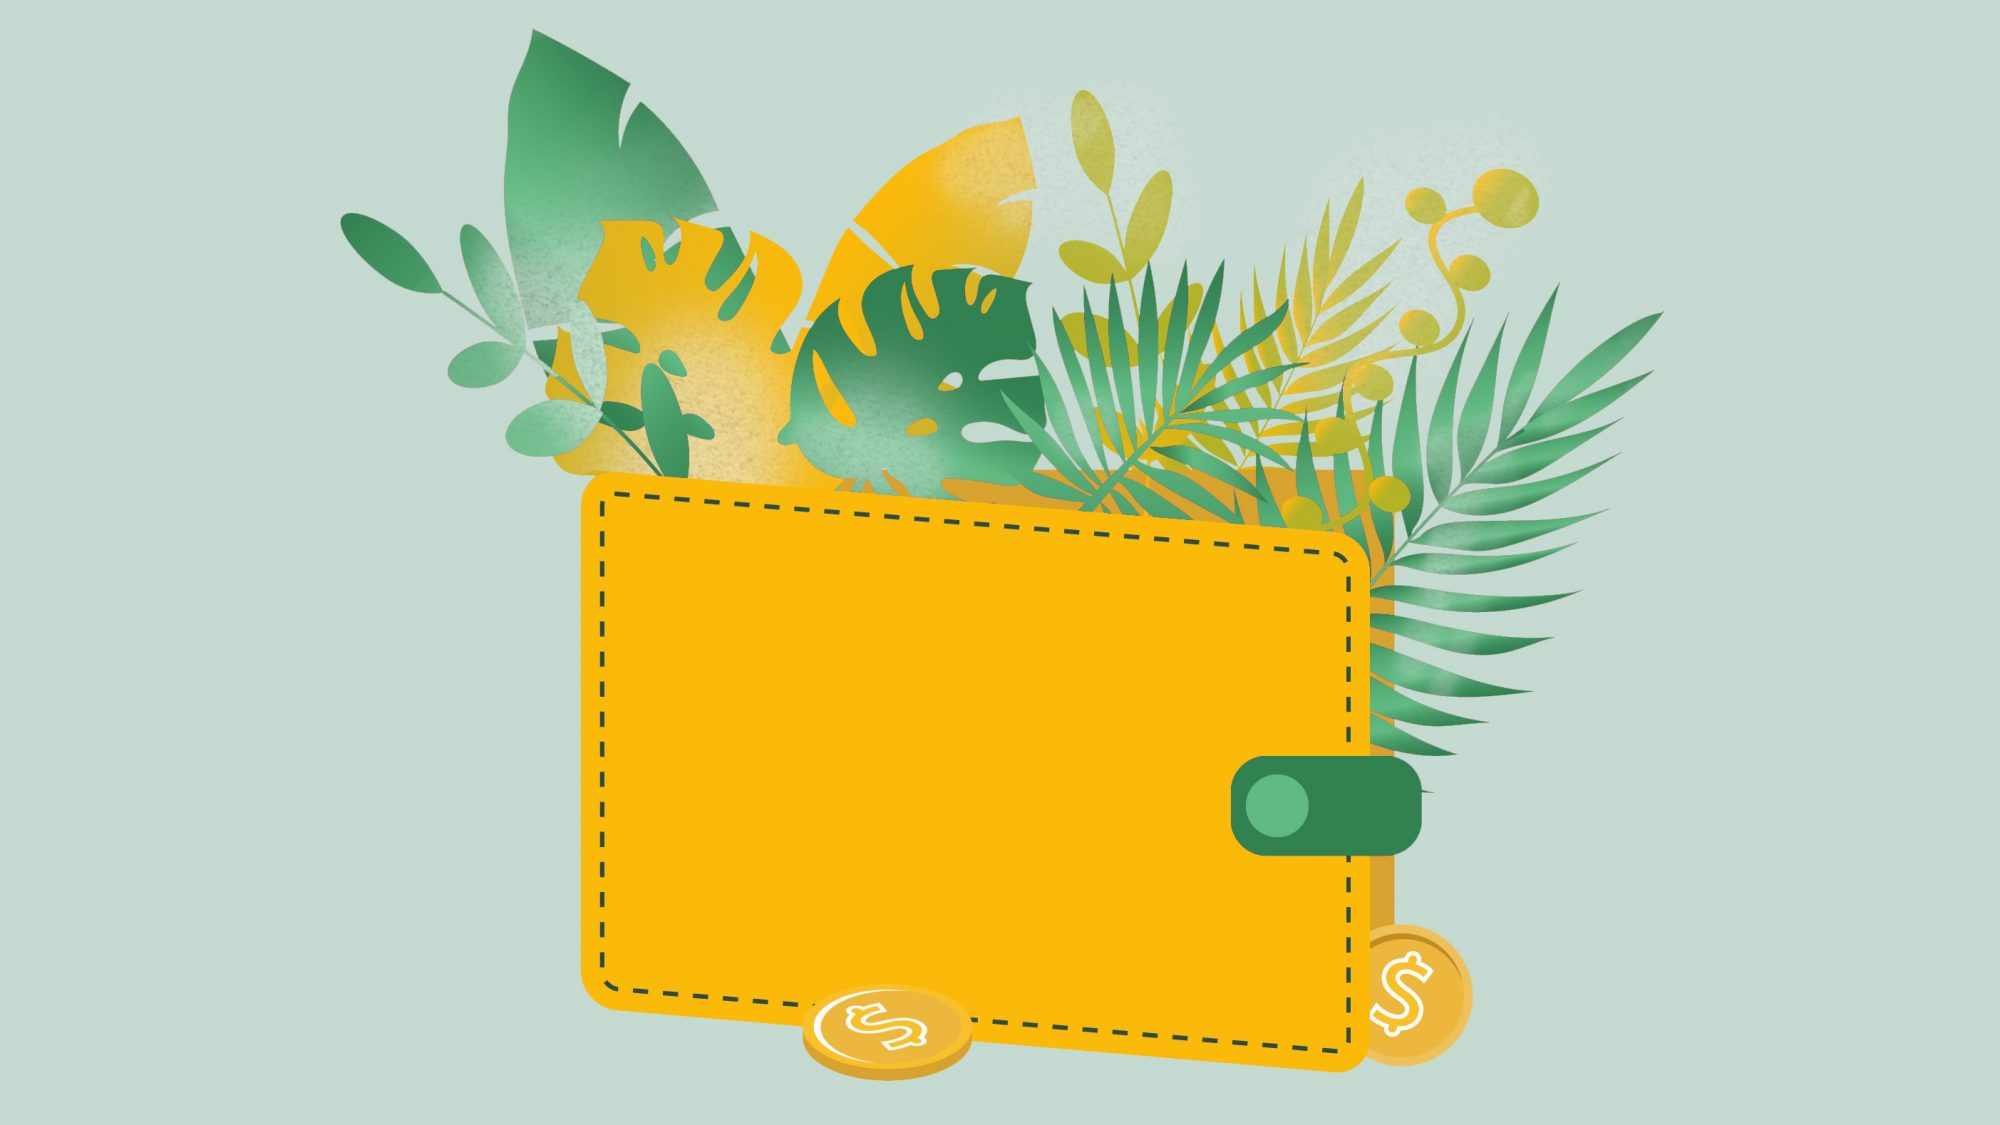 Yellow wallet with coins. Branches and leaves of plants. Flat illustration isolated on a white background. Finance, savings, currency, bank deposit.